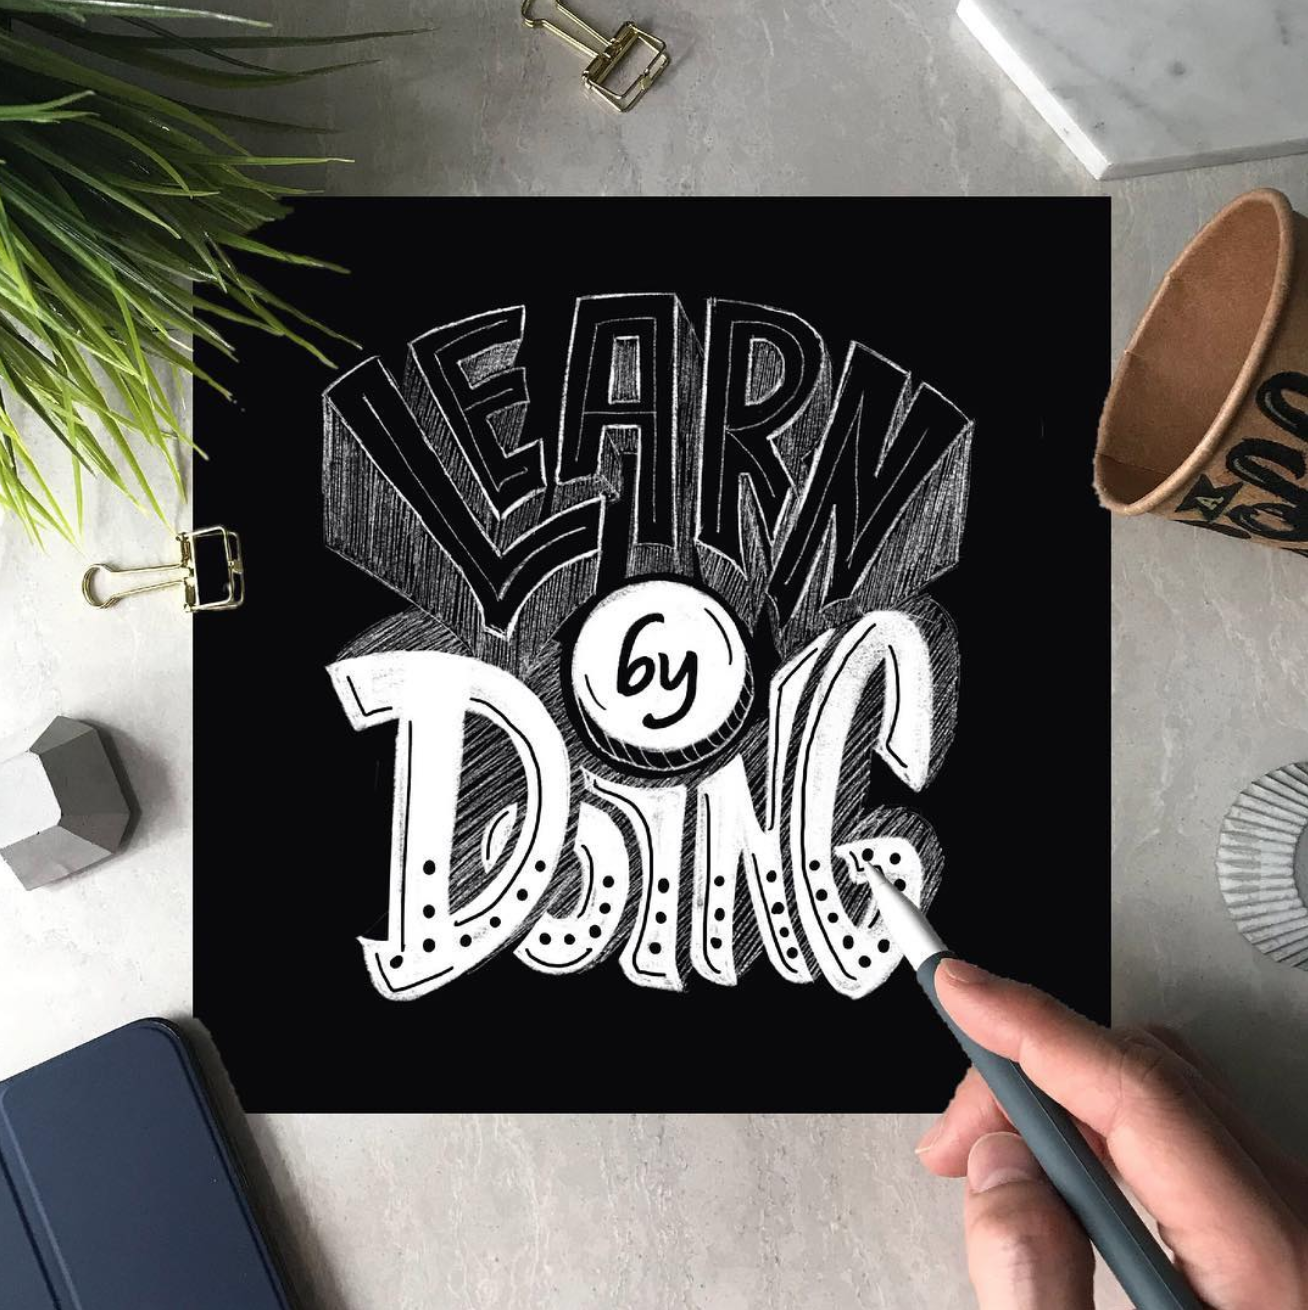 Nathaniel recent inclination to chalkboard lettering has caused his Instagram feed to be donned in white lettering on black surfaces. It's absolutely stunning to see!